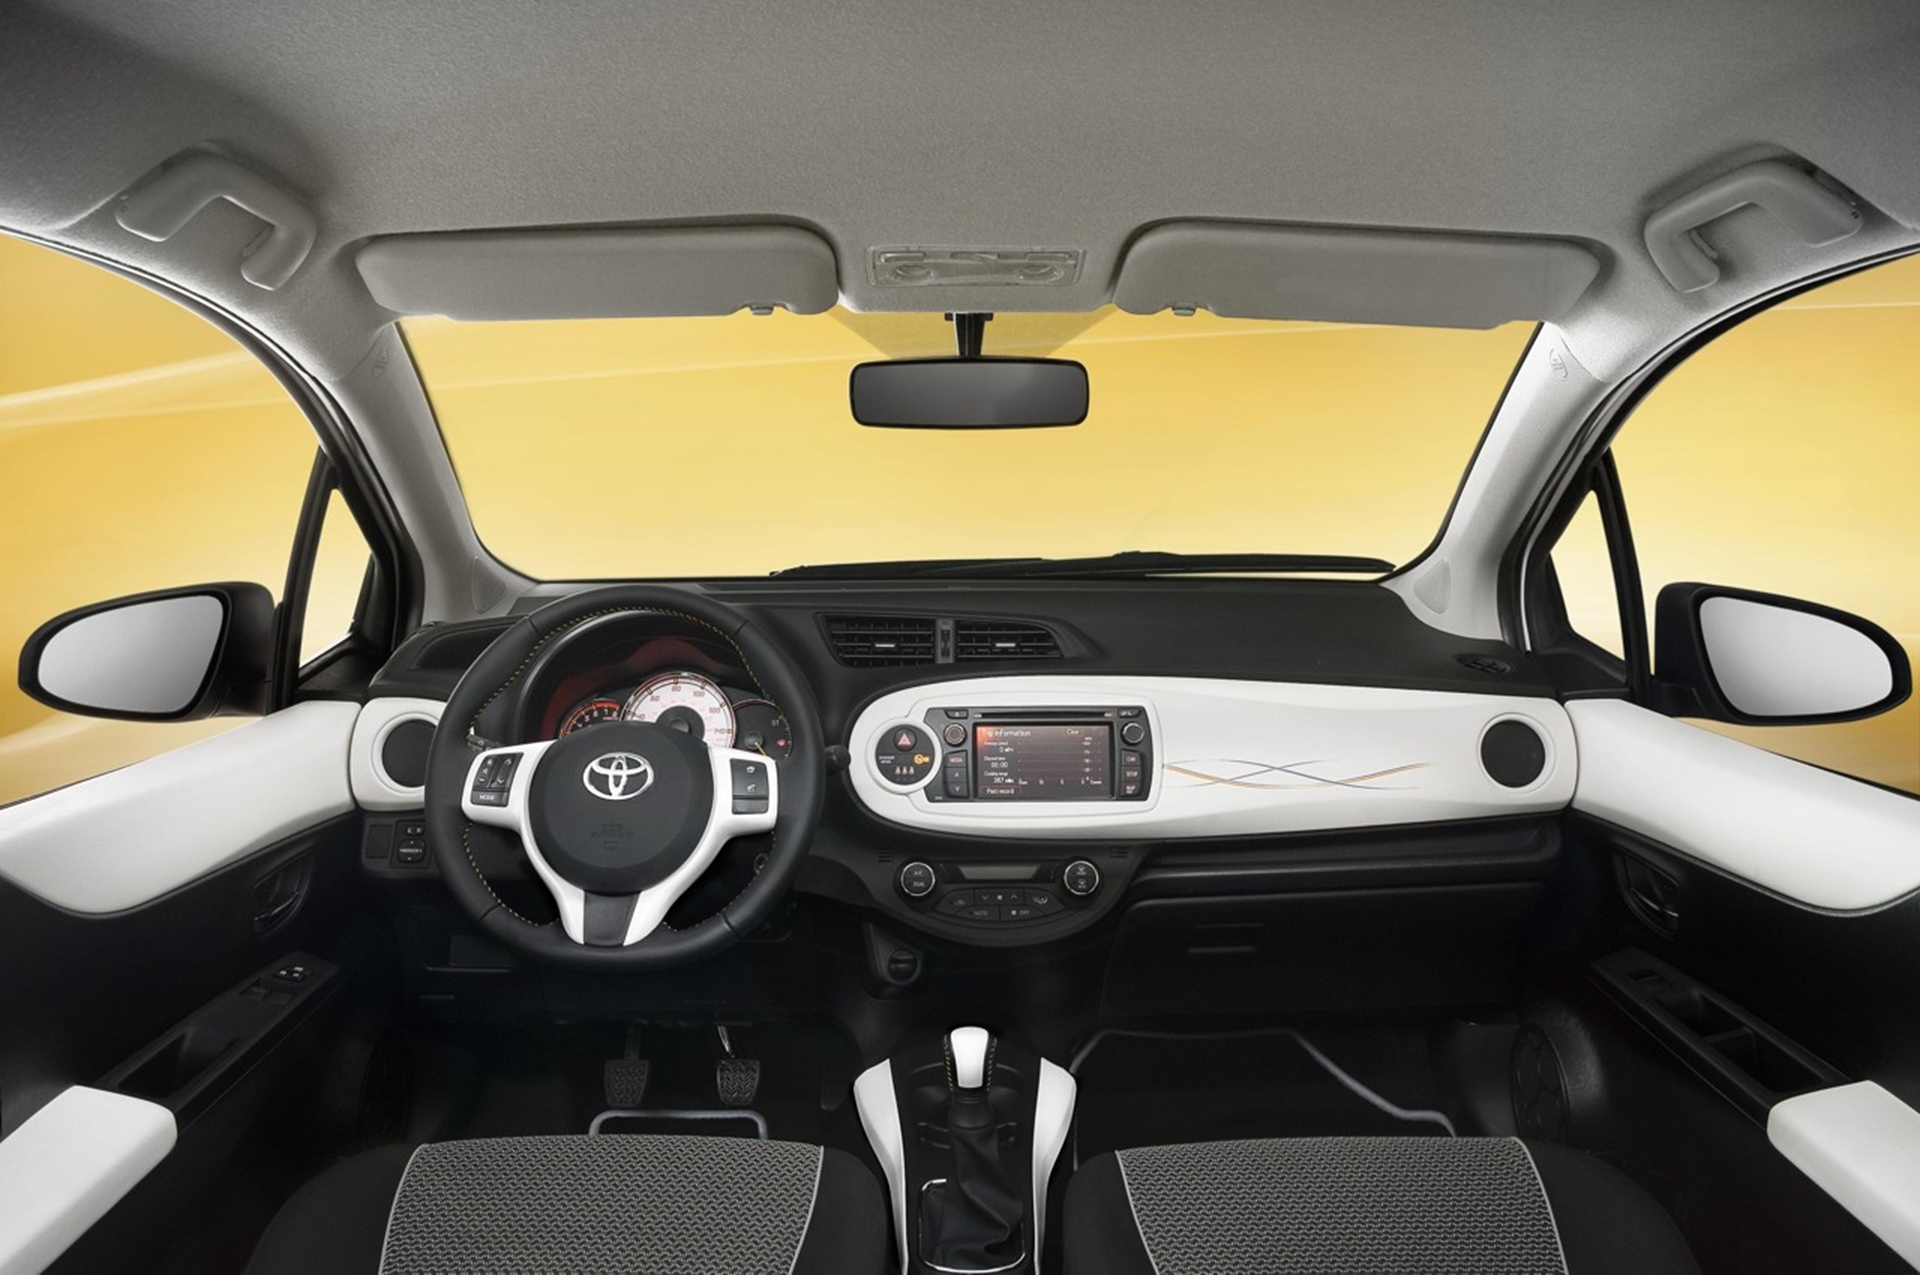 Toyota Yaris 2013 Inside